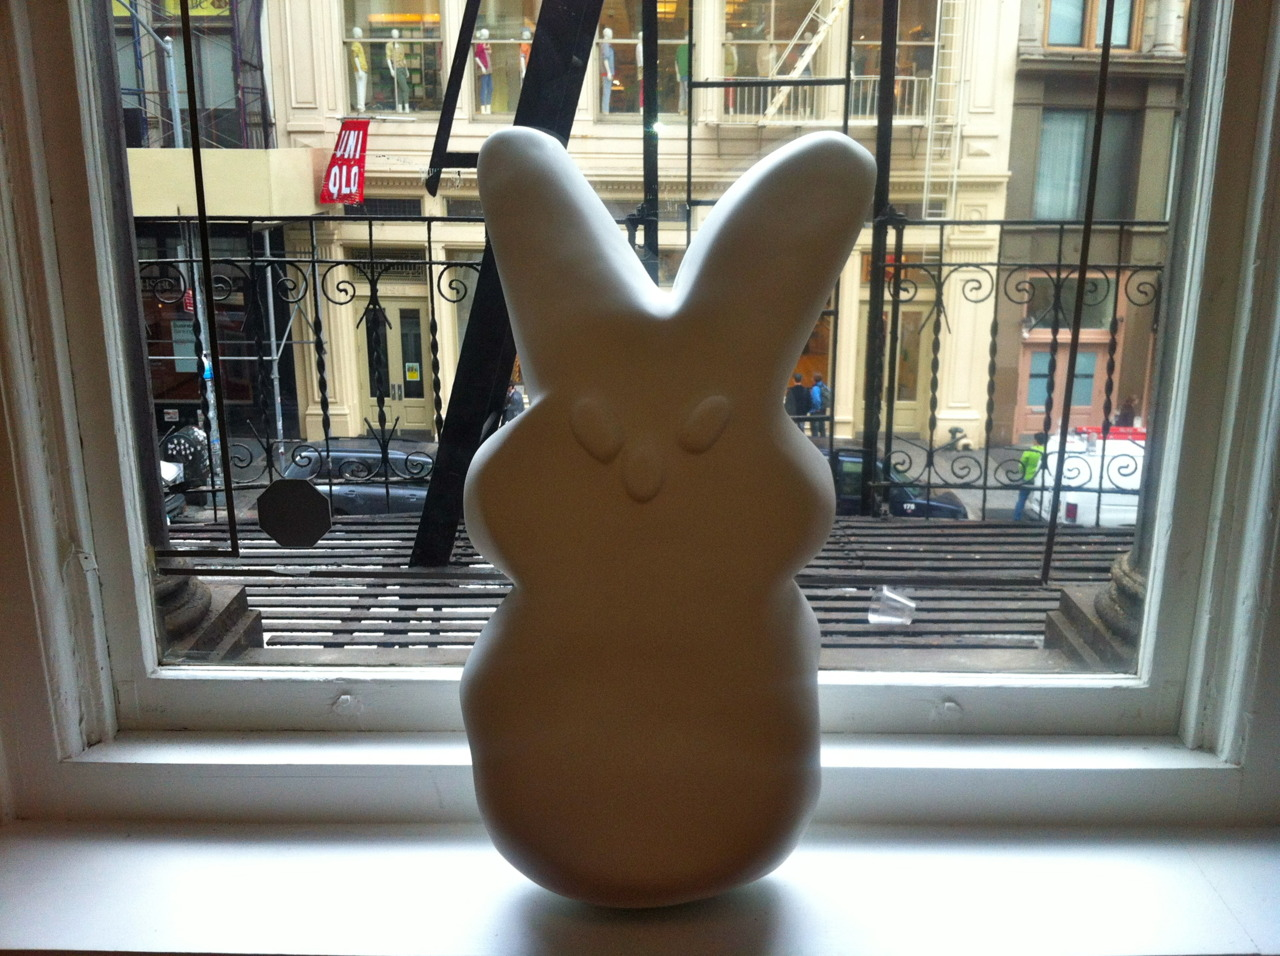 Just arrived : Randy Polumbo's Peep for  GREY AREA 's showroom!